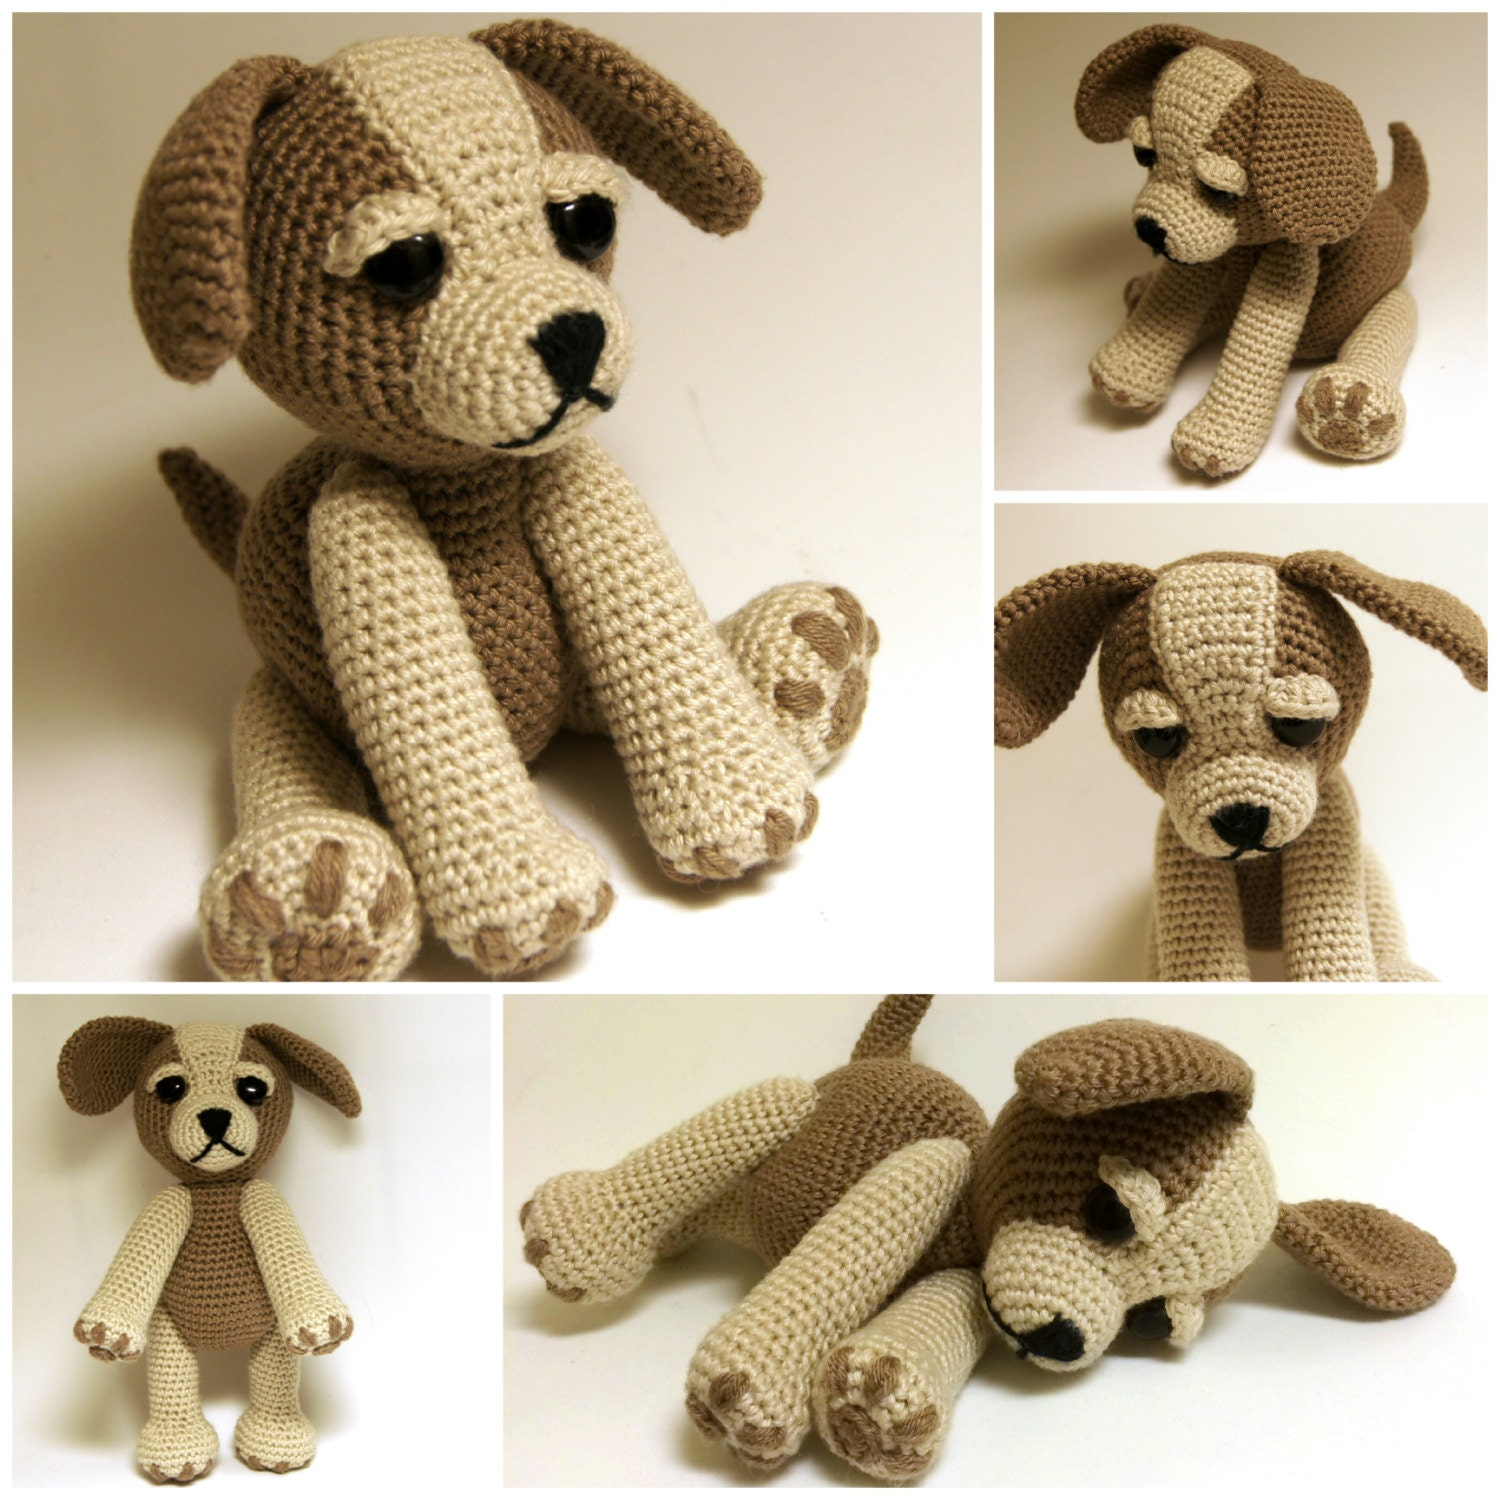 Crochet Pattern Sammy The Puppy Dog Crochet Dog Crochet Animal